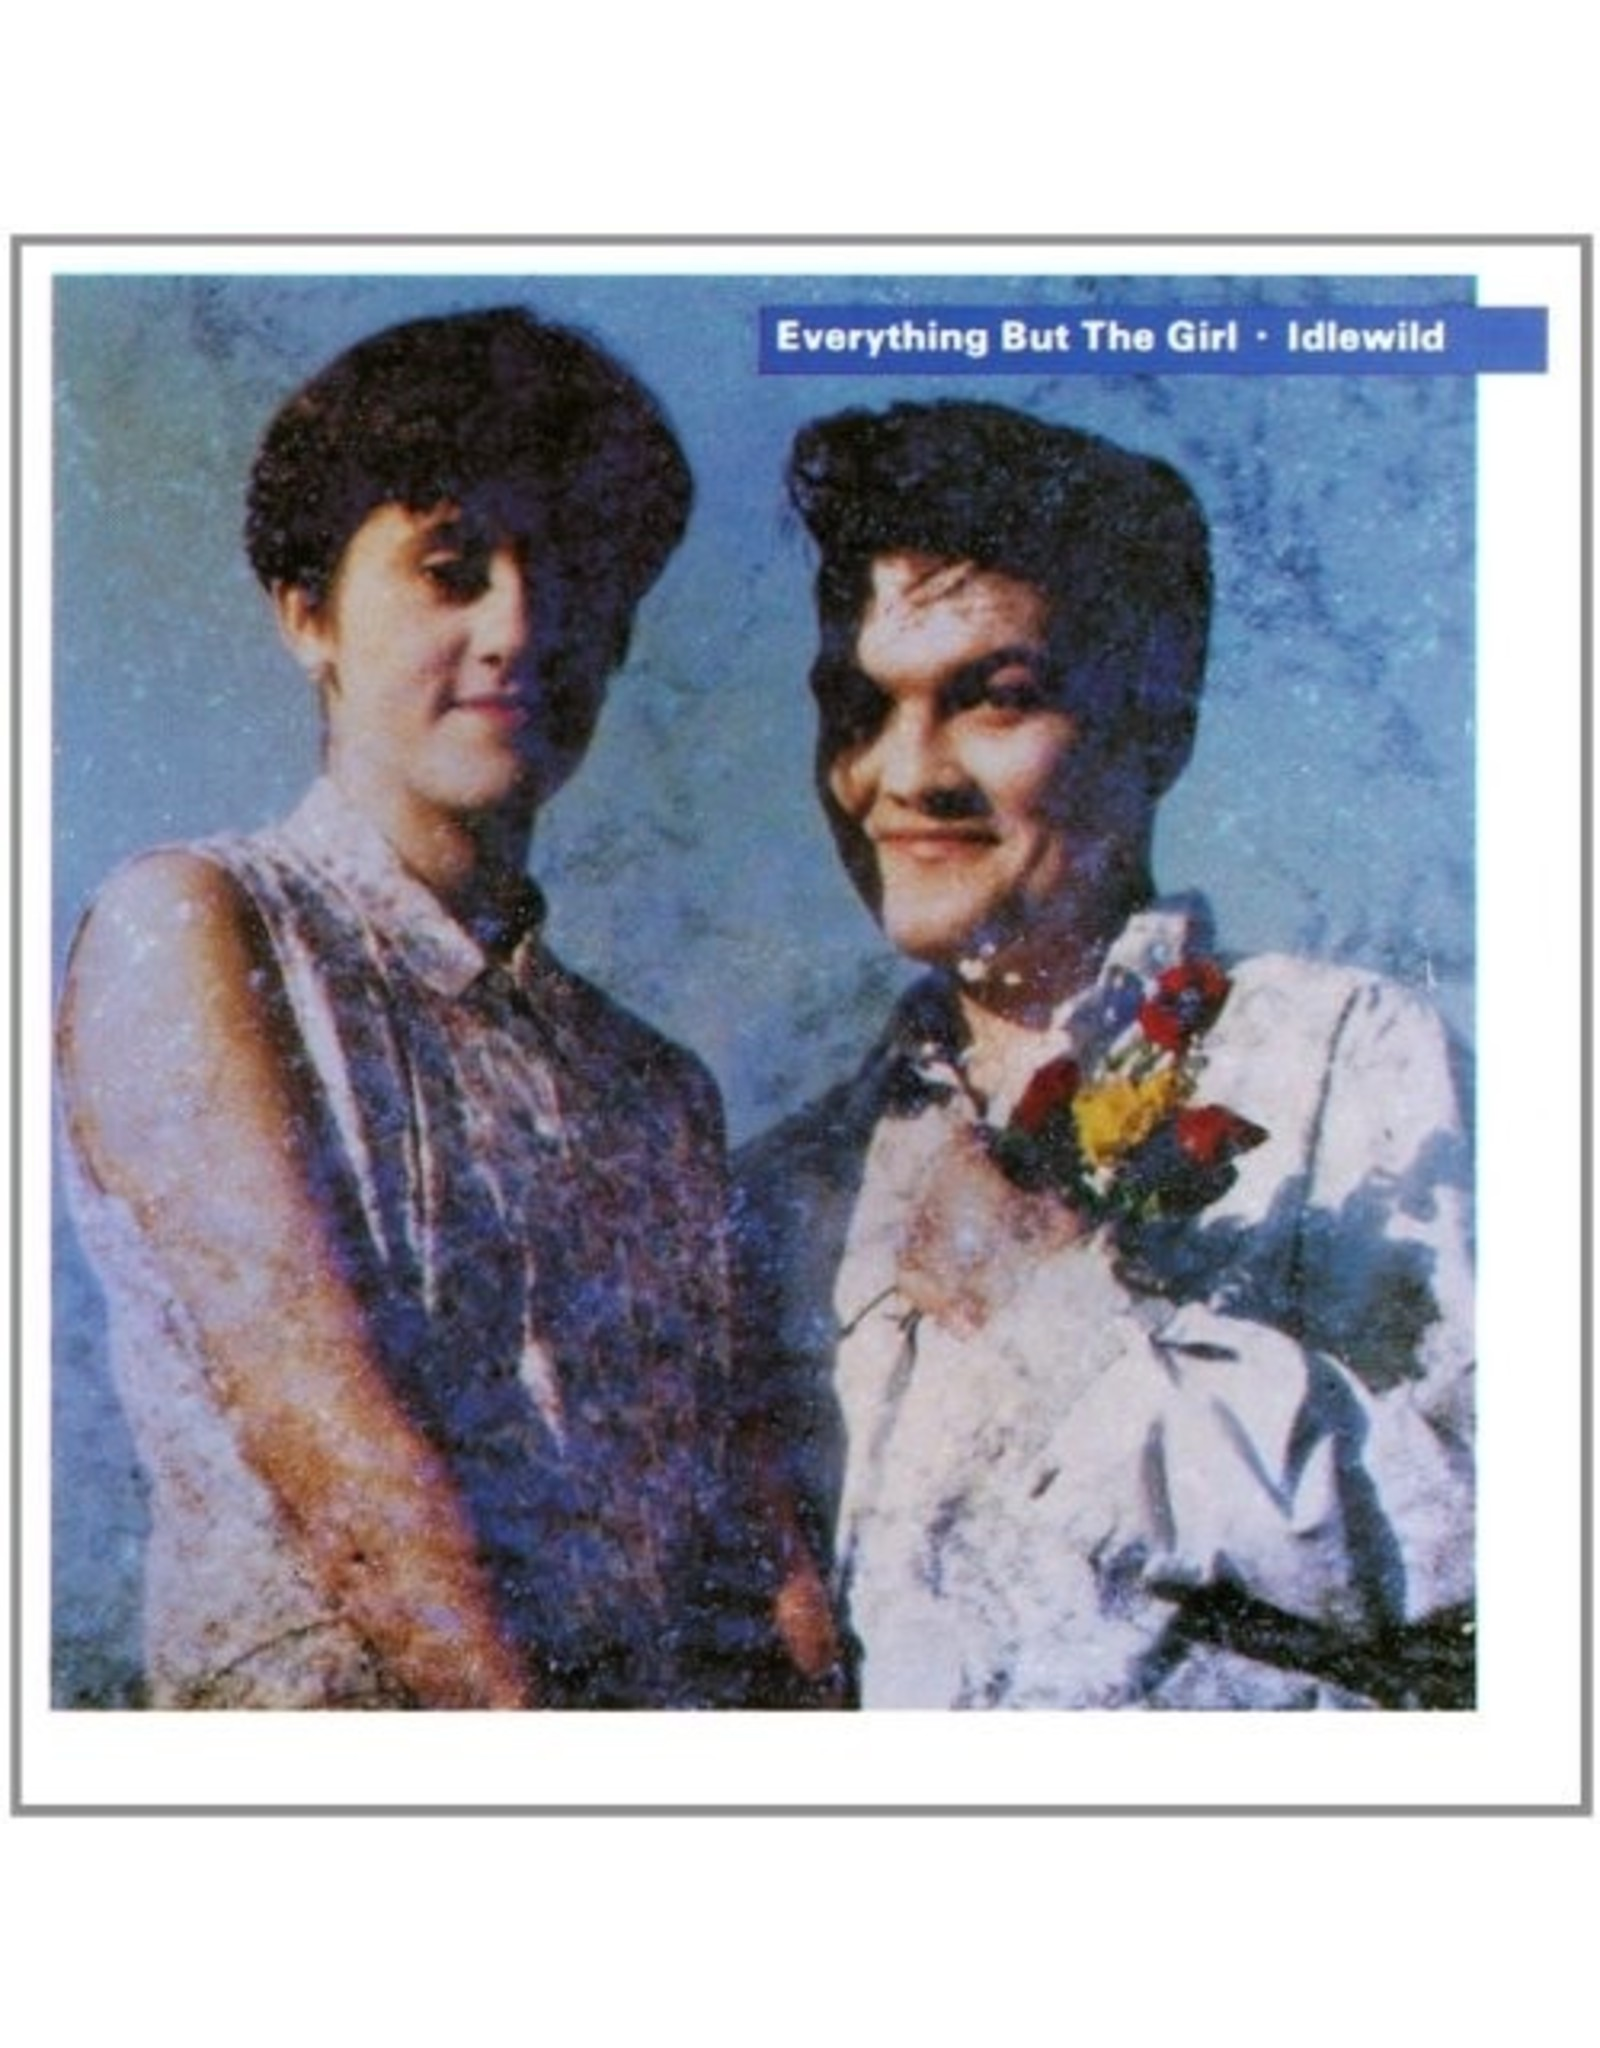 New Vinyl Everything But The Girl - Idlewild LP